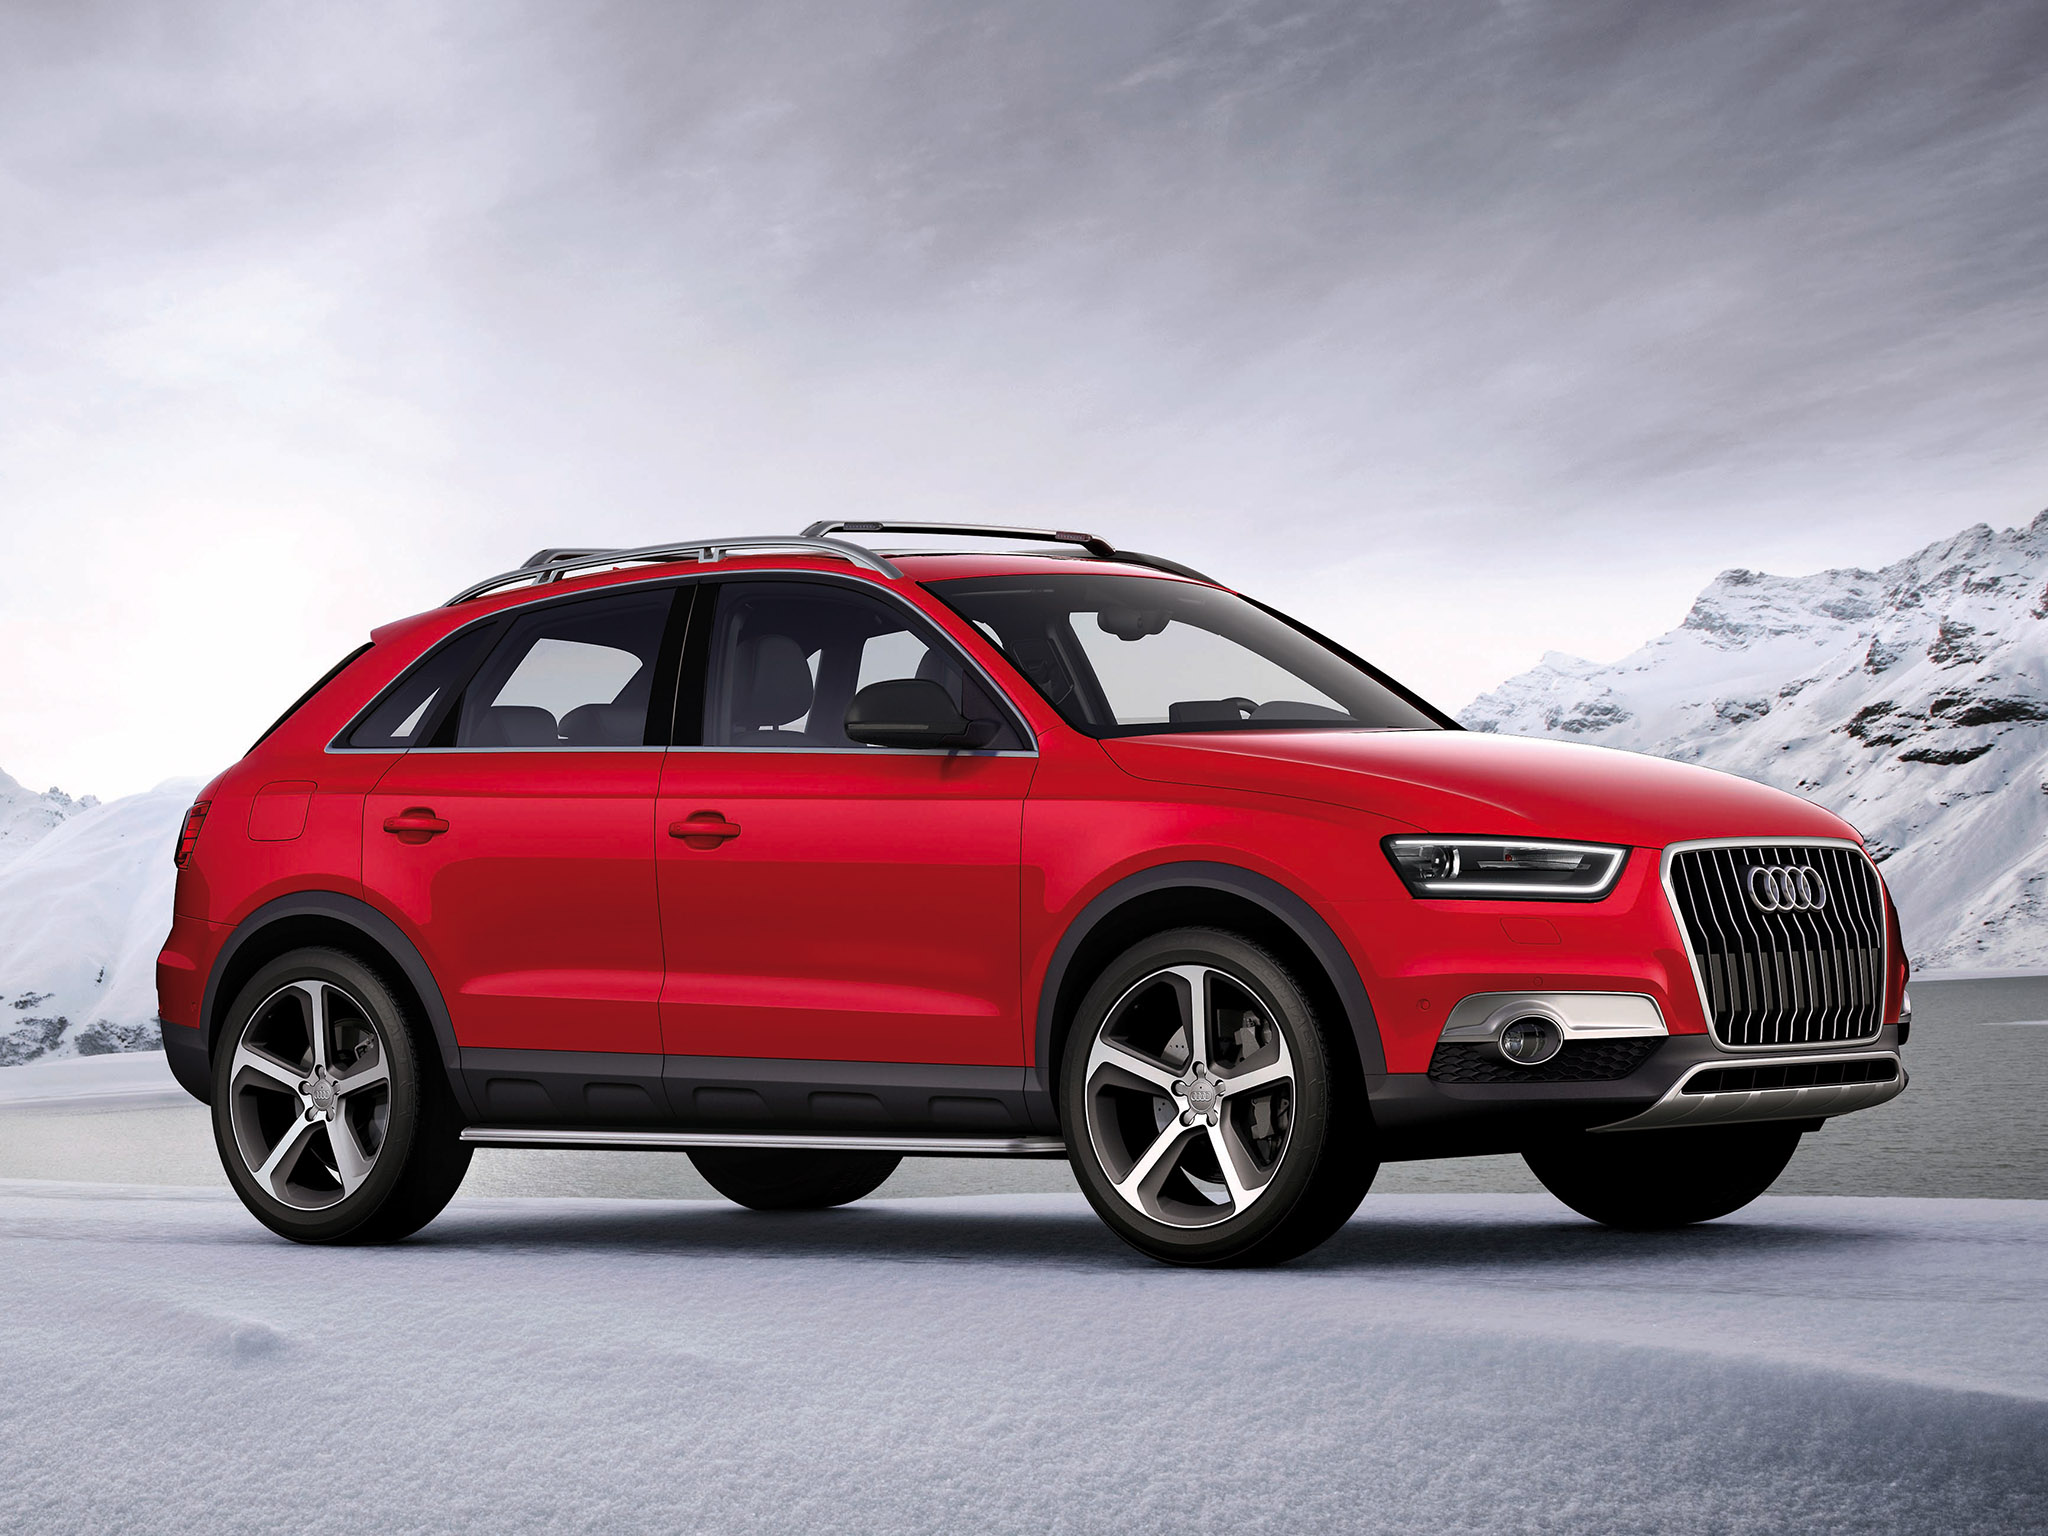 audi q3 vail concept 2012 audi q3 vail concept 2012 photo 02 car in pictures car photo gallery. Black Bedroom Furniture Sets. Home Design Ideas